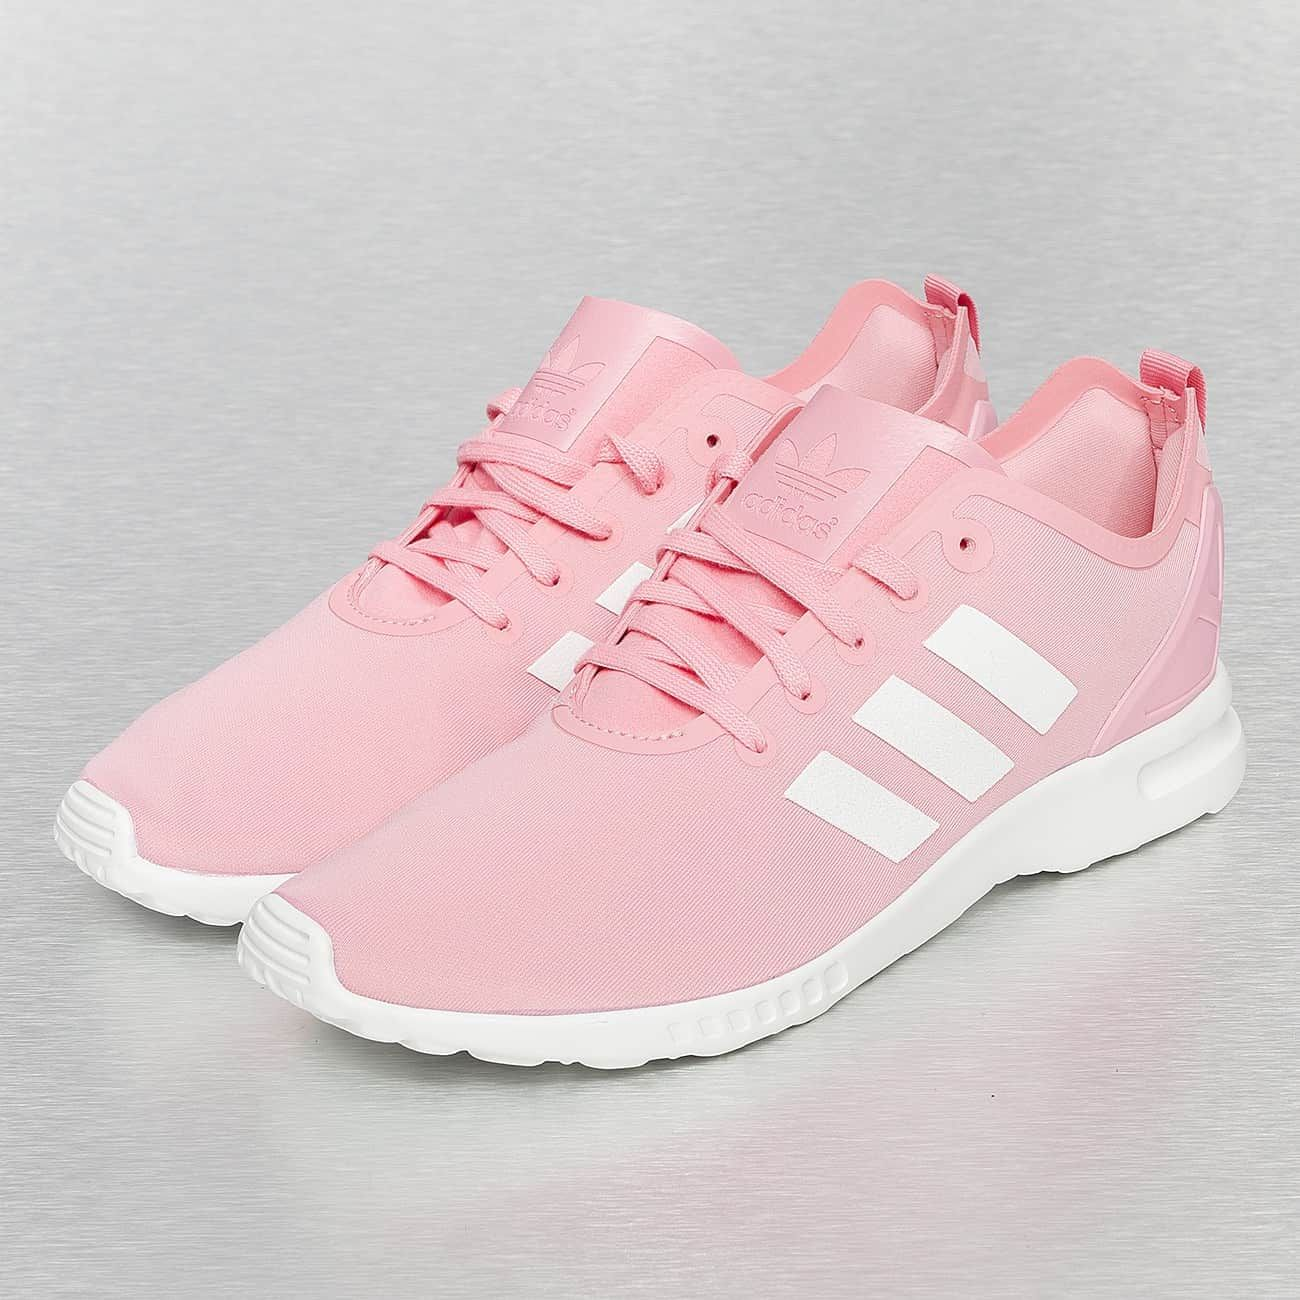 low priced b5951 41c4c adidas Sneaker pink